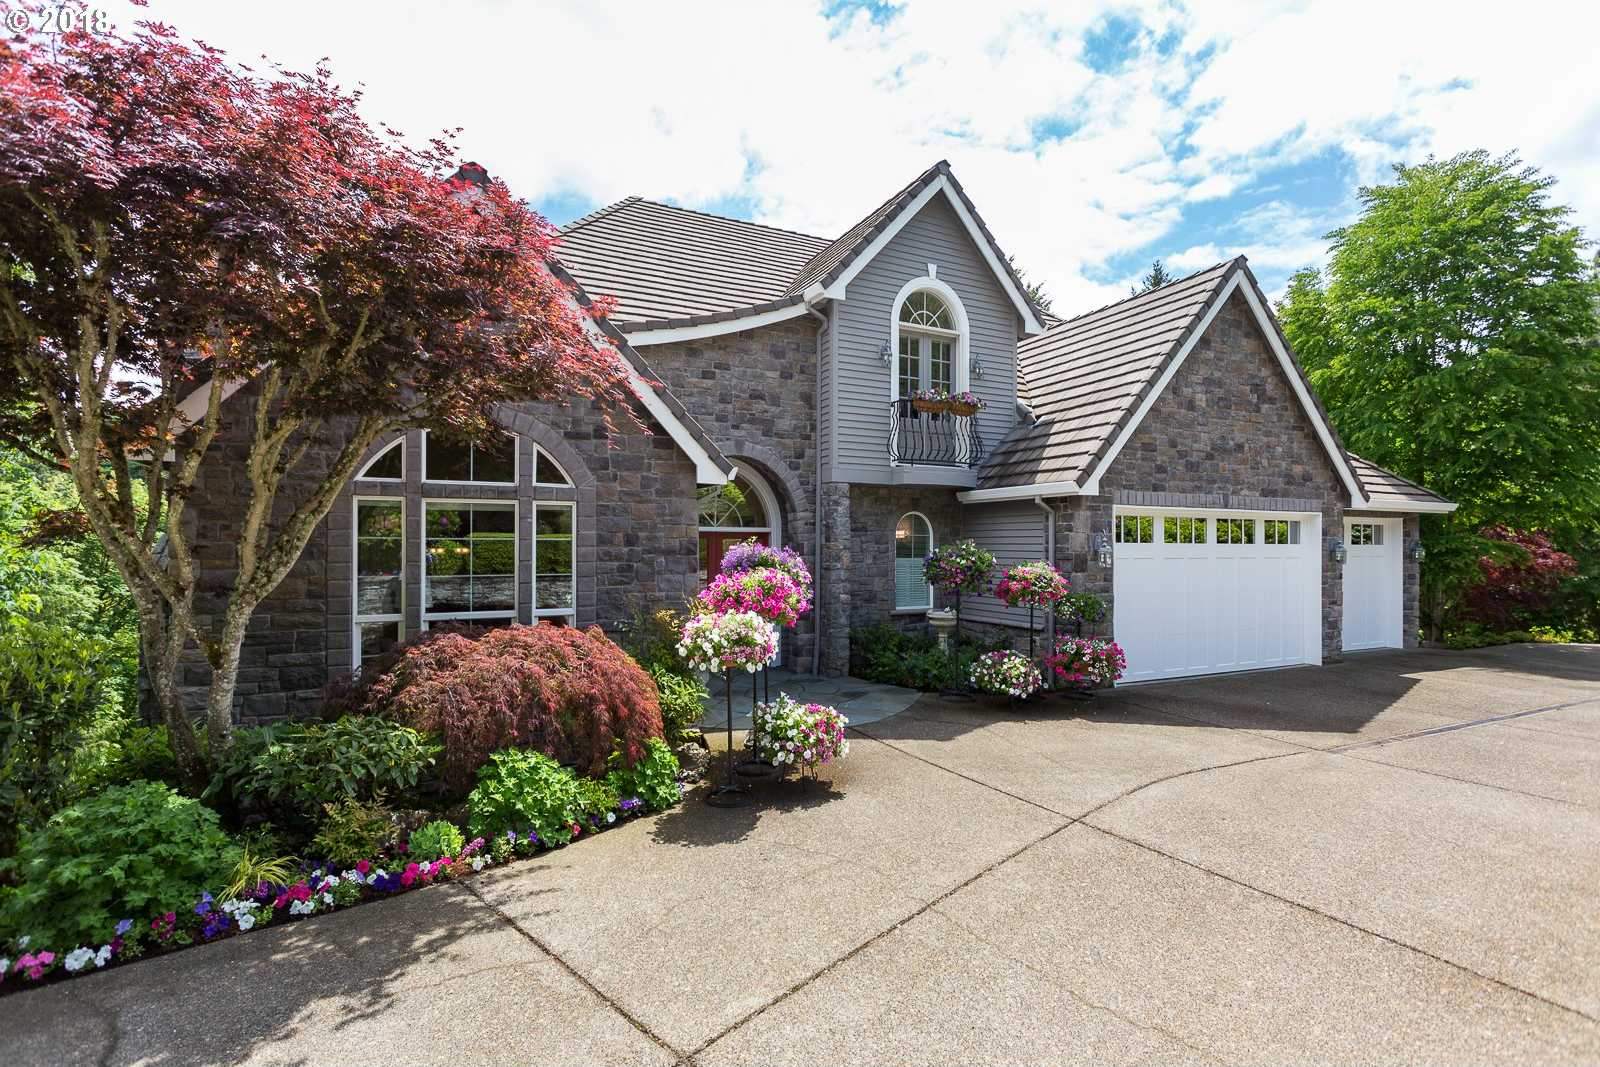 $1,245,000 - 5Br/4Ba -  for Sale in Timberline / Murray Hill Area, Beaverton